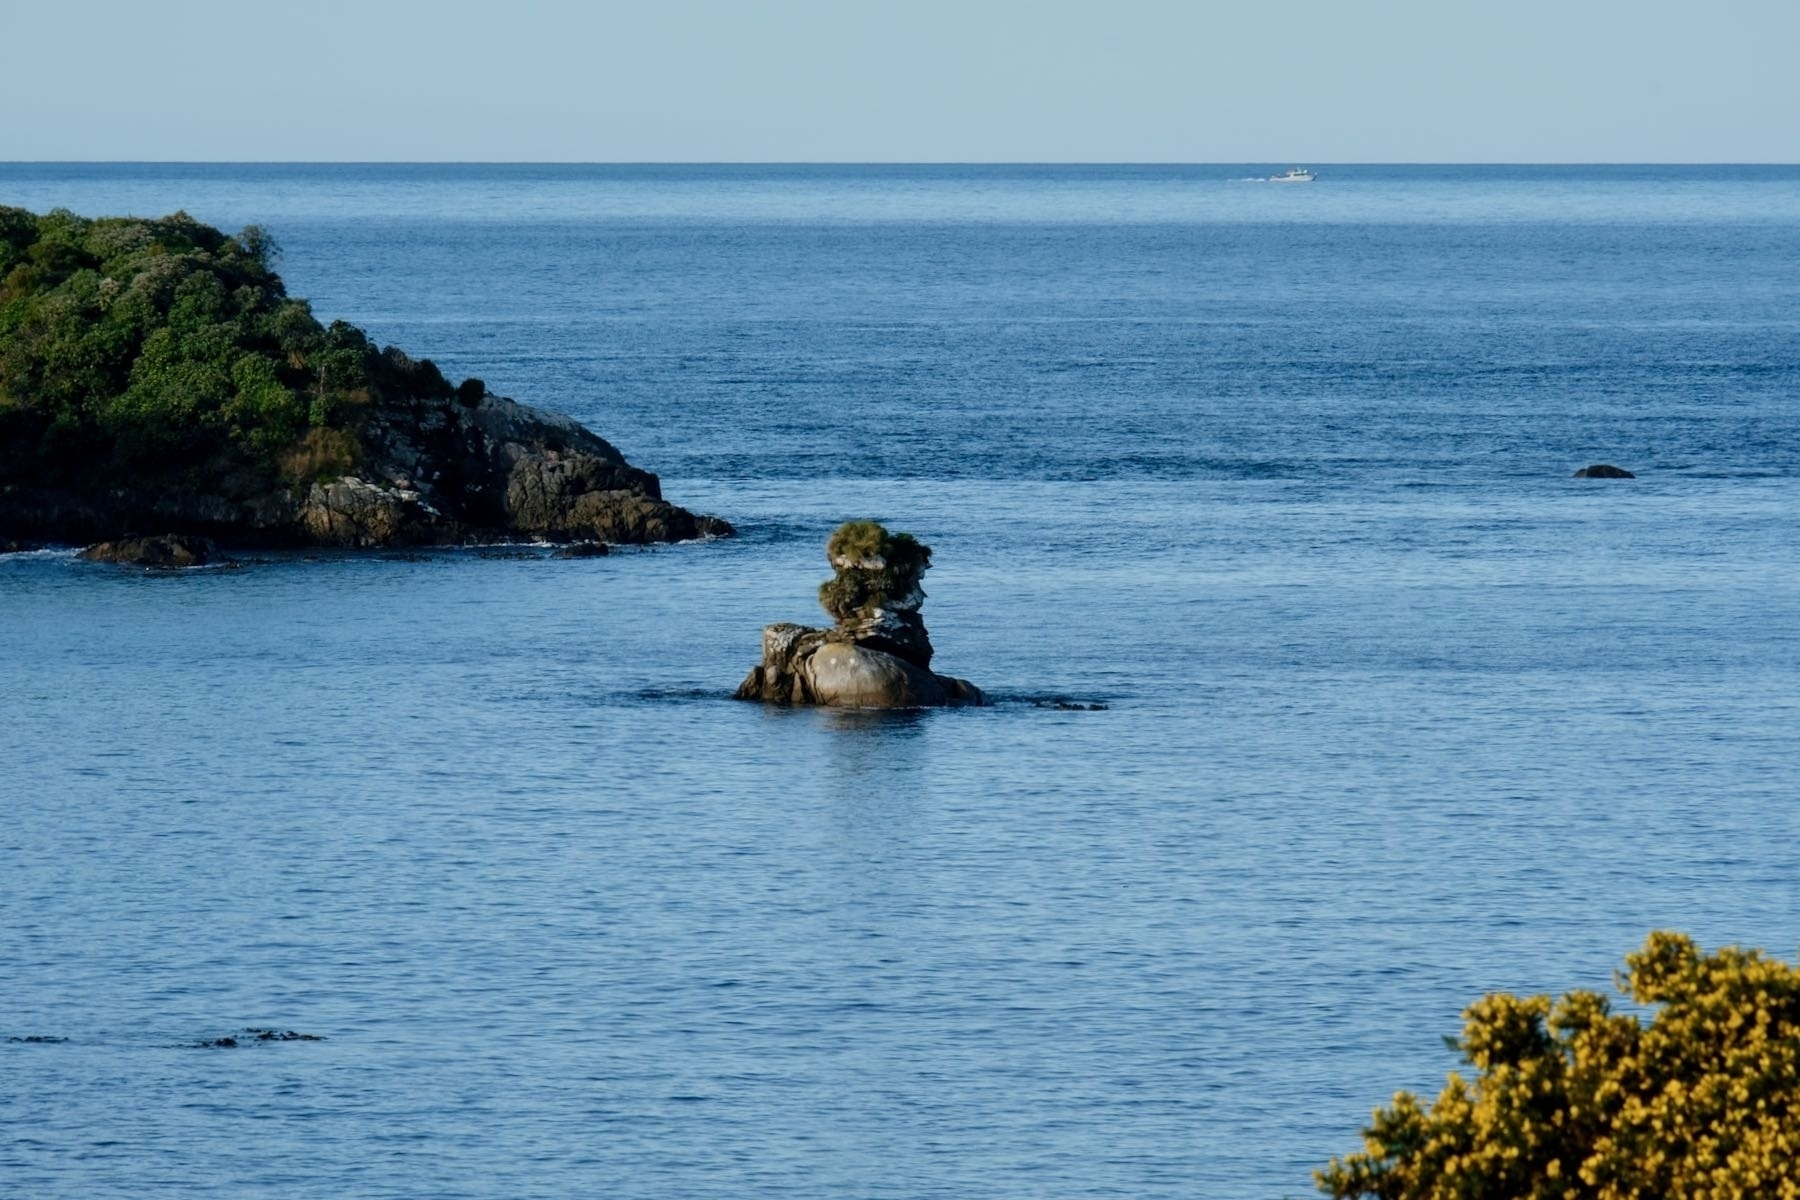 Rocky island with boat in the background.